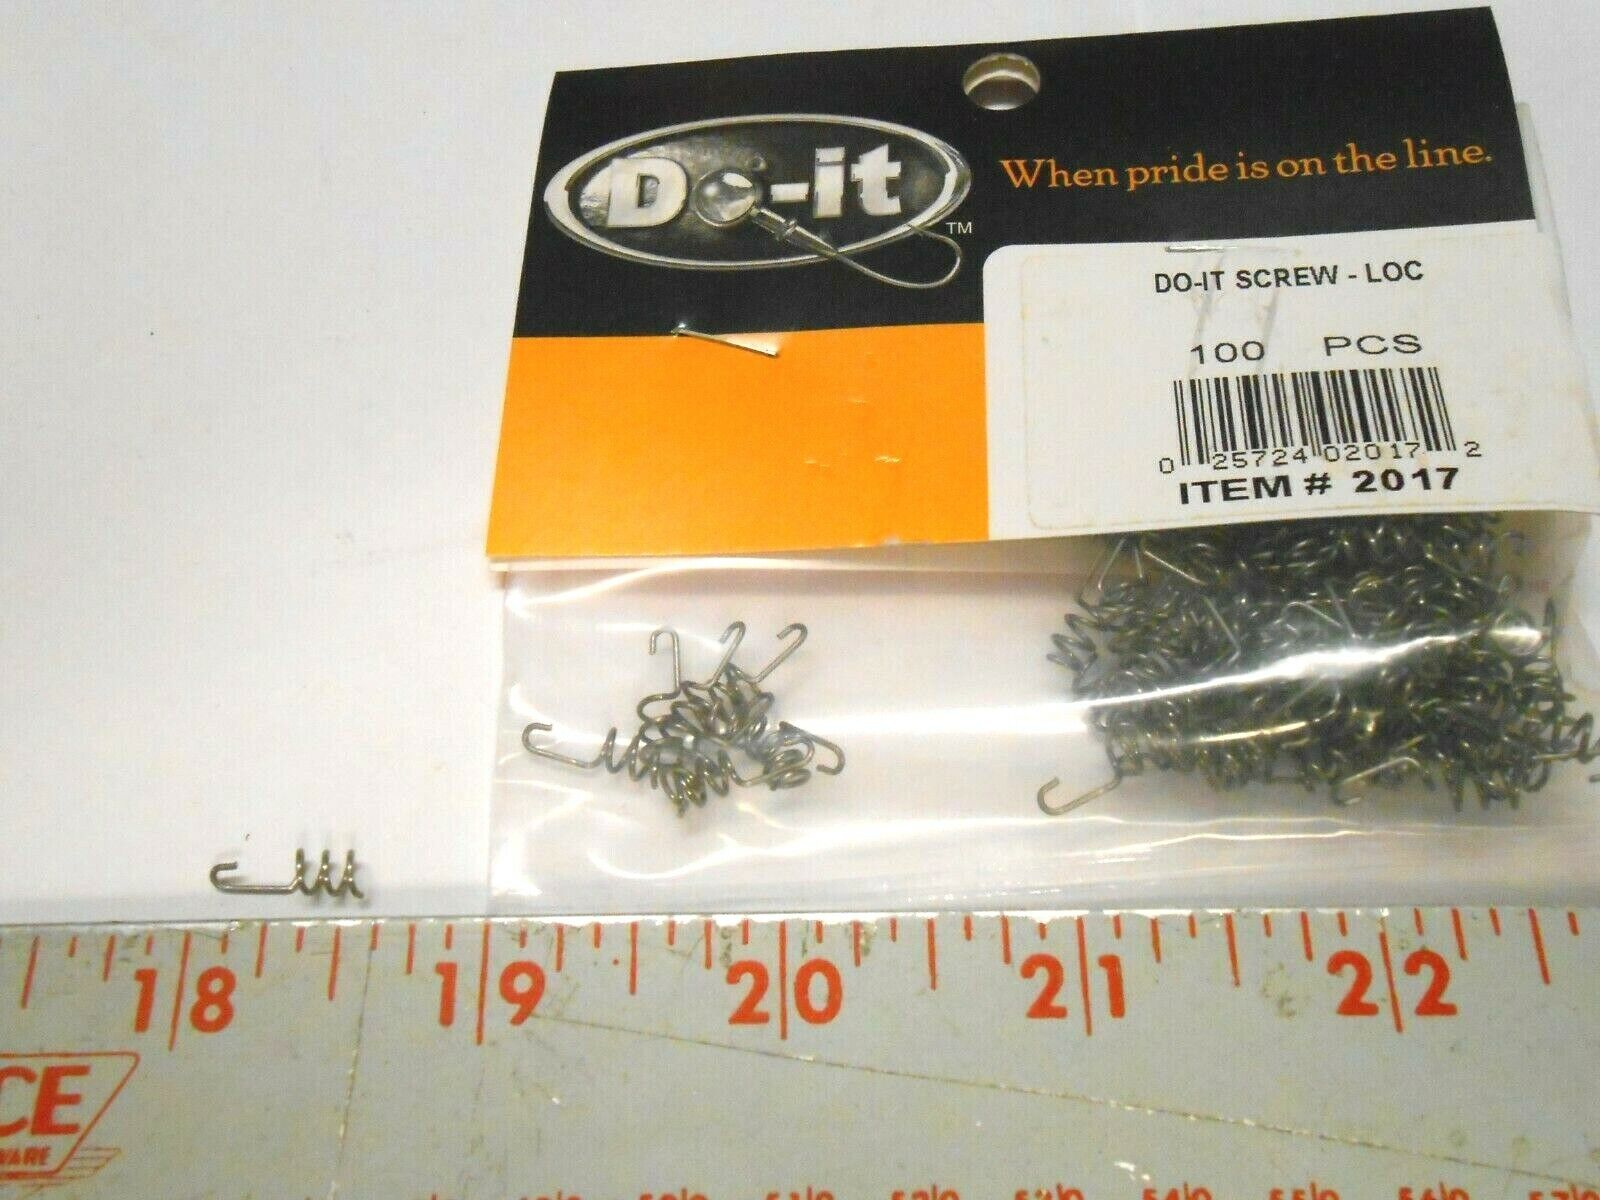 Do-It HITCHHIKERS /& SCREW-LOCS  I REFUND EXCESS SHIPPING FEES!!